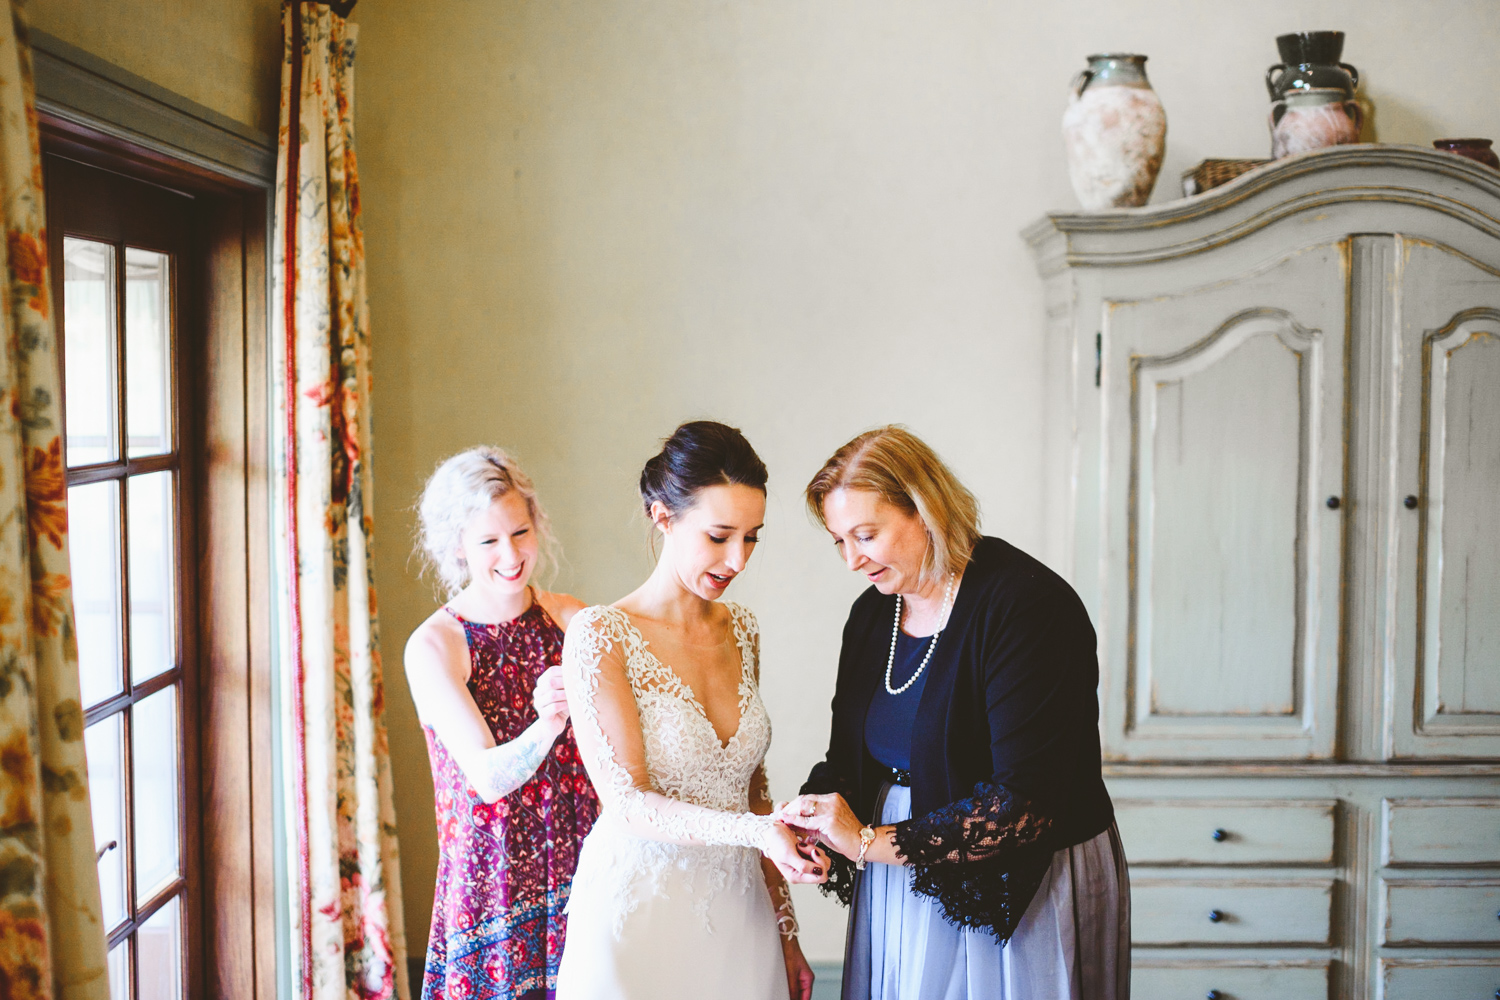 011 - mother of the bride and maid of honor help bride put on wedding dress.jpg